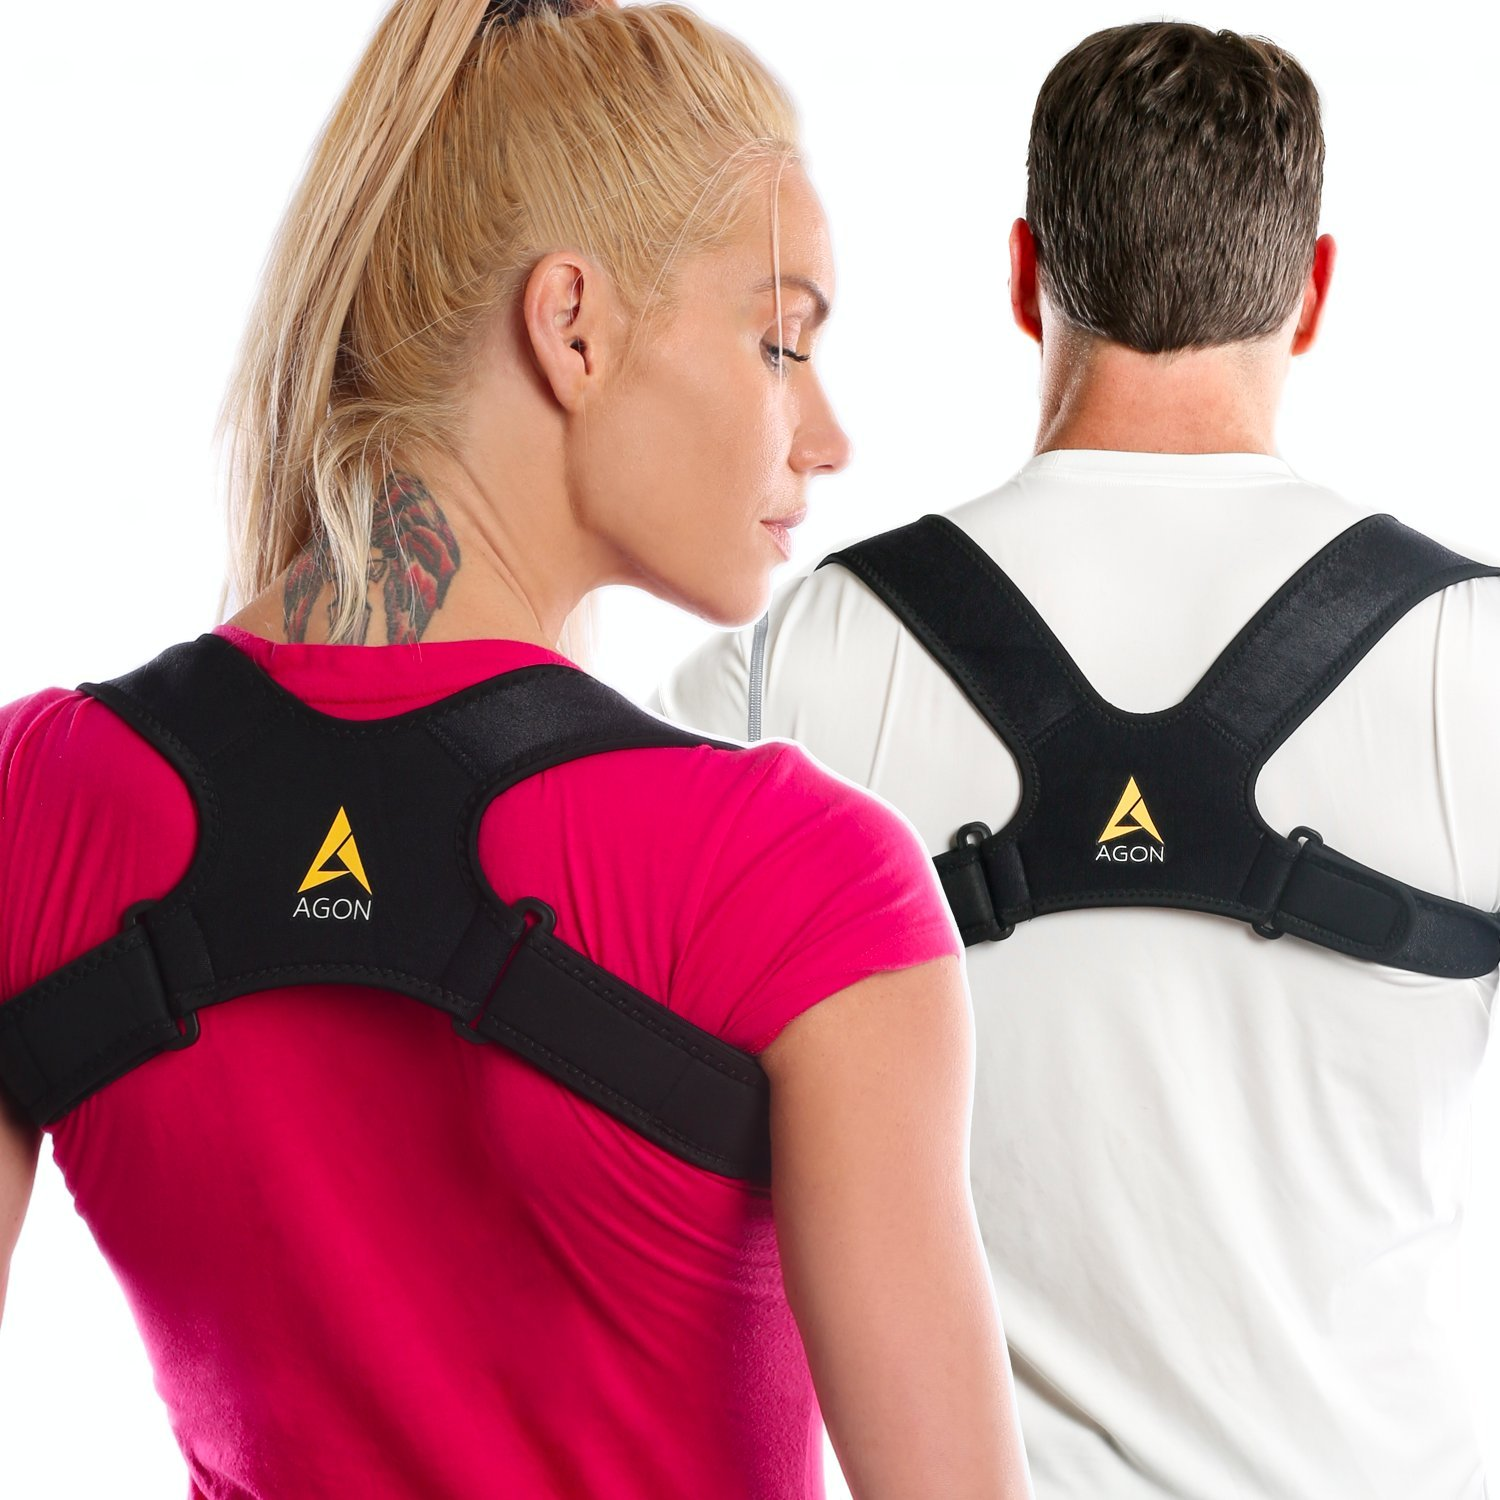 d95917e6728e Agon Posture Corrector Clavicle Support Strap, Posture Brace Medical Device  to Improve Bad Posture, Thoracic Kyphosis, Shoulder Alignment, Upper Back  ...